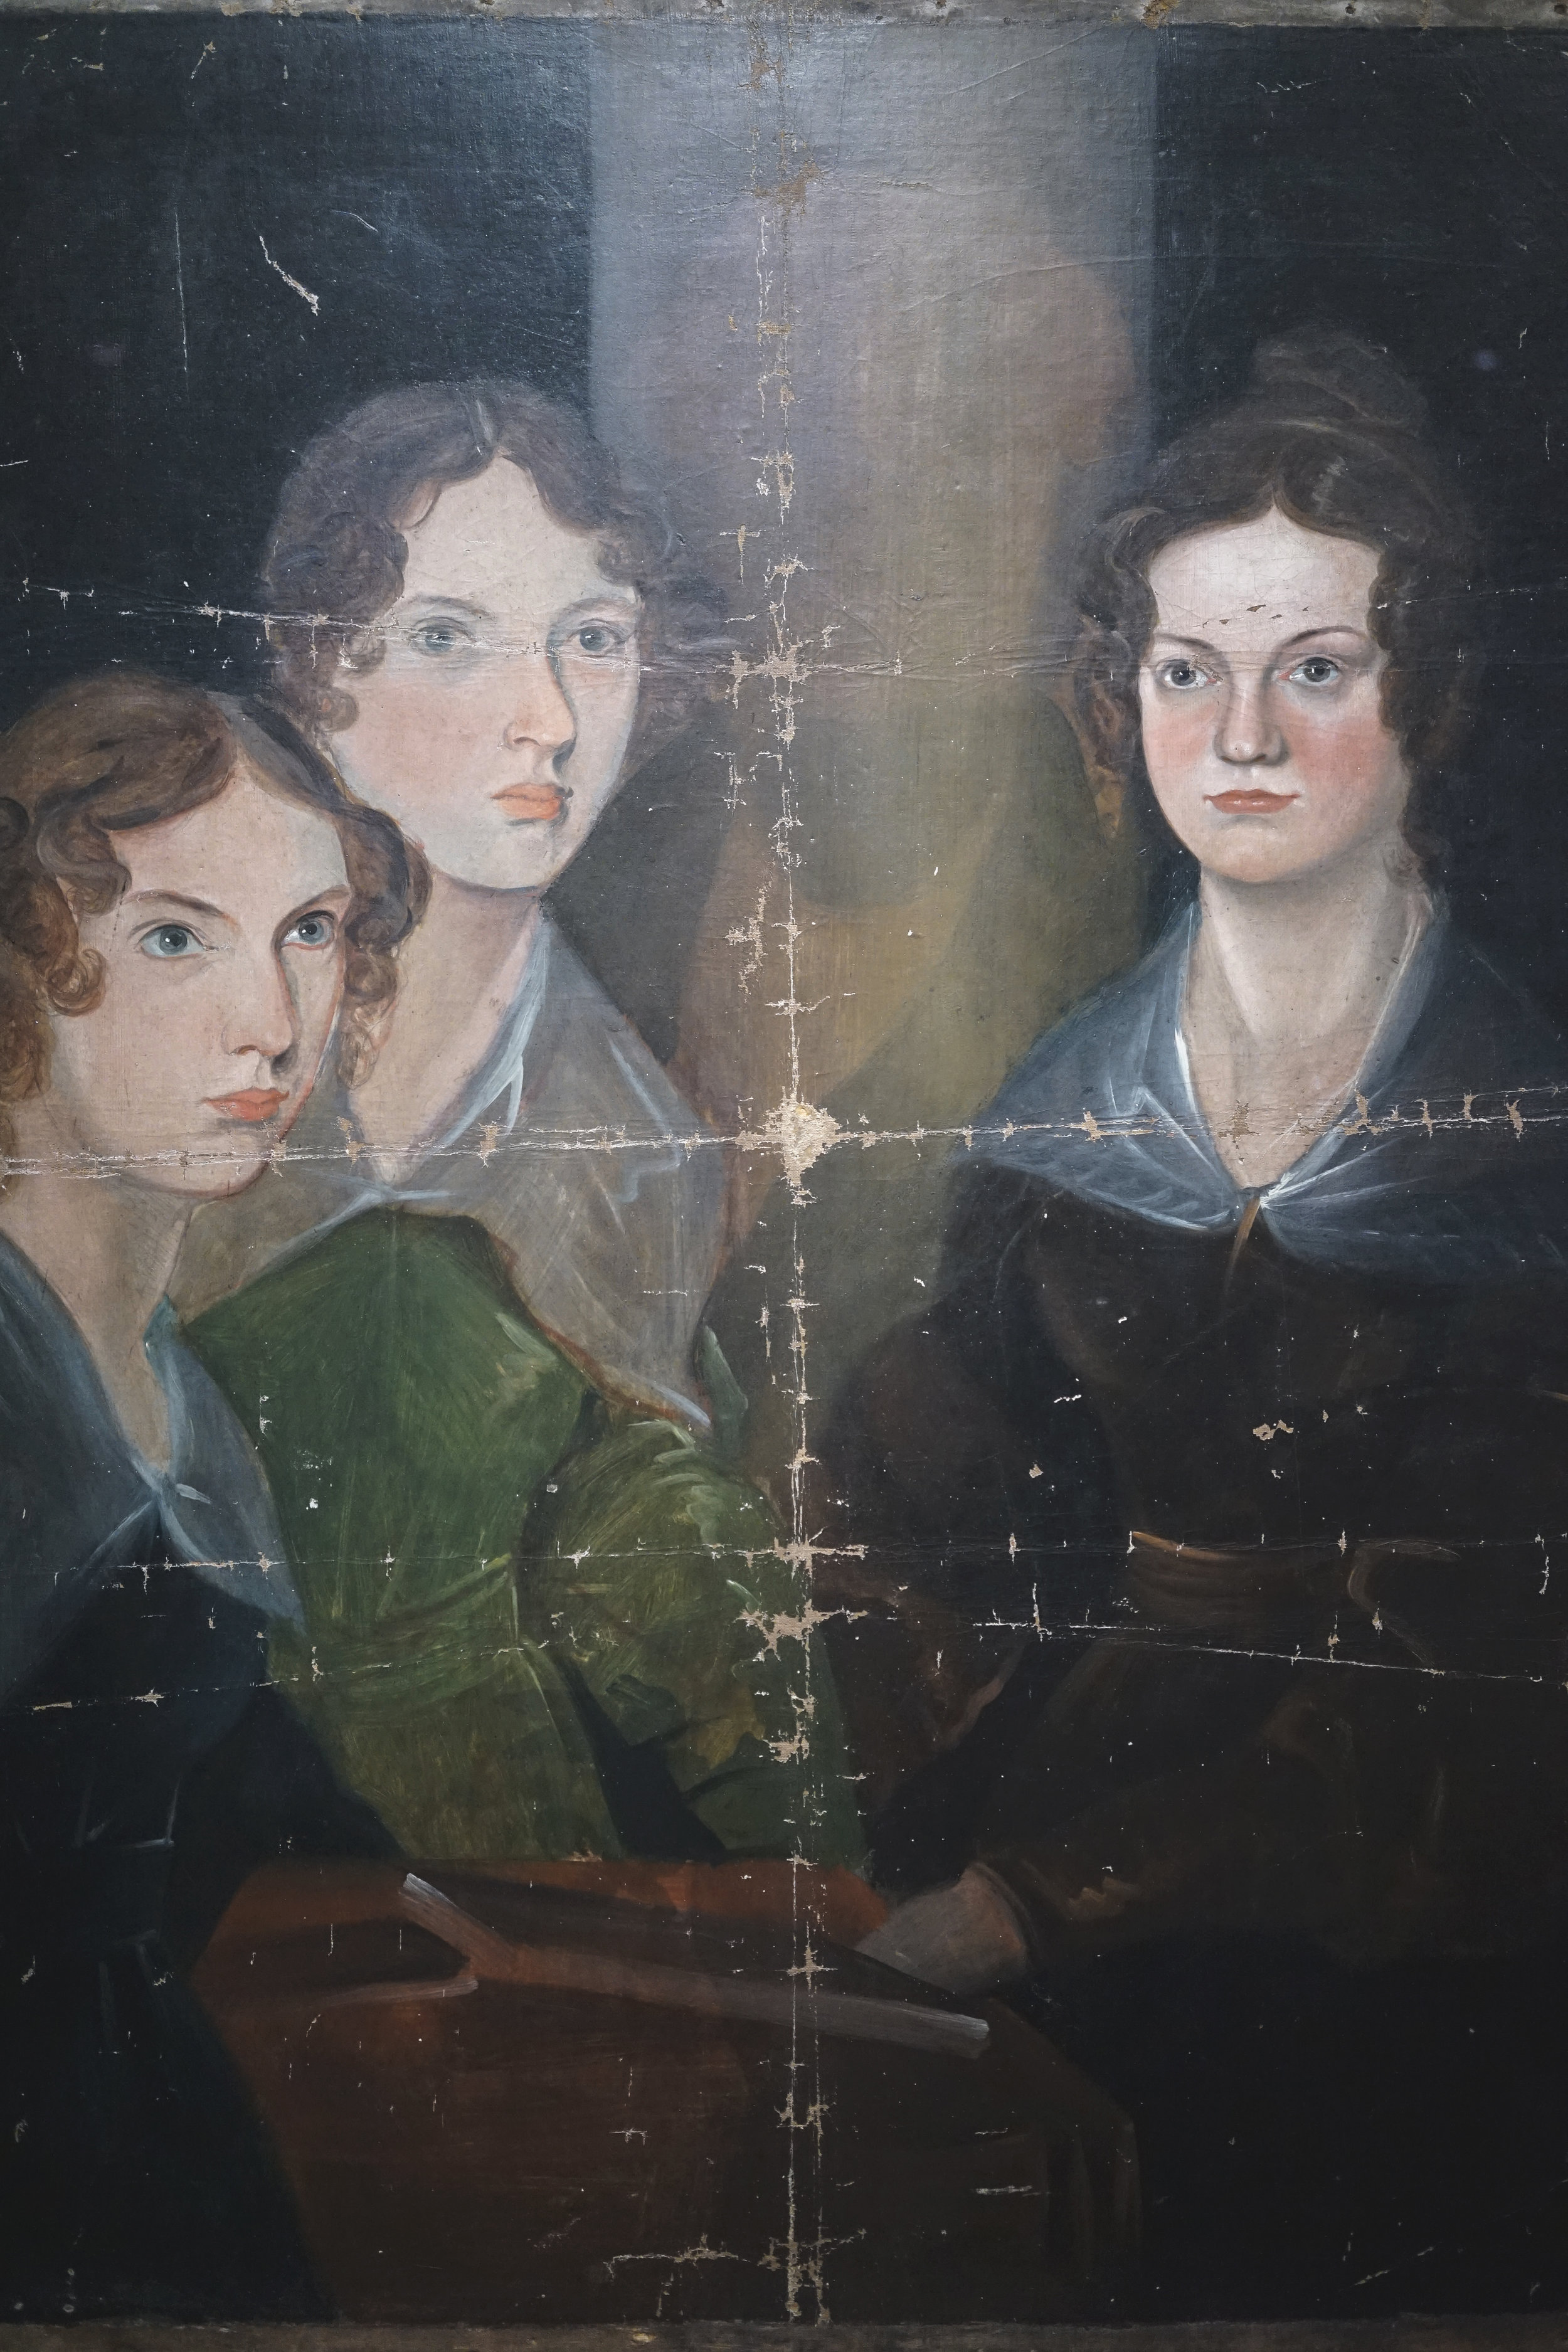 Branwell Brontë was about seventeen when he began this unfinished portrait, depicting his teenage sisters over a decade before they published the novels that made them famous. During the 1950's, infrared photography confirmed the presence of fourth figure- presumably a self-portrait that Branwell had chosen to efface- beneath the central pillar. As the oil paint has faded over time, the ghostly image has become ever more apparent to the naked eye.   The painting's condition reflects its history. Arthur Bell Nicholls, Charlotte's widower, took the work from Haworth parsonage to his new home in Banagher, Ireland, after Patrick Brontë's death. In 1914, Nicholls's second wife, Mary Ann, discovered the painting on top of a wardrobe in their farmhouse, where it had apparently lain folded for over fifty year. It was acquired by the National Portrait Gallery that year and placed on display to the public's great fascination. A century later, it is on view for the first time in North America.